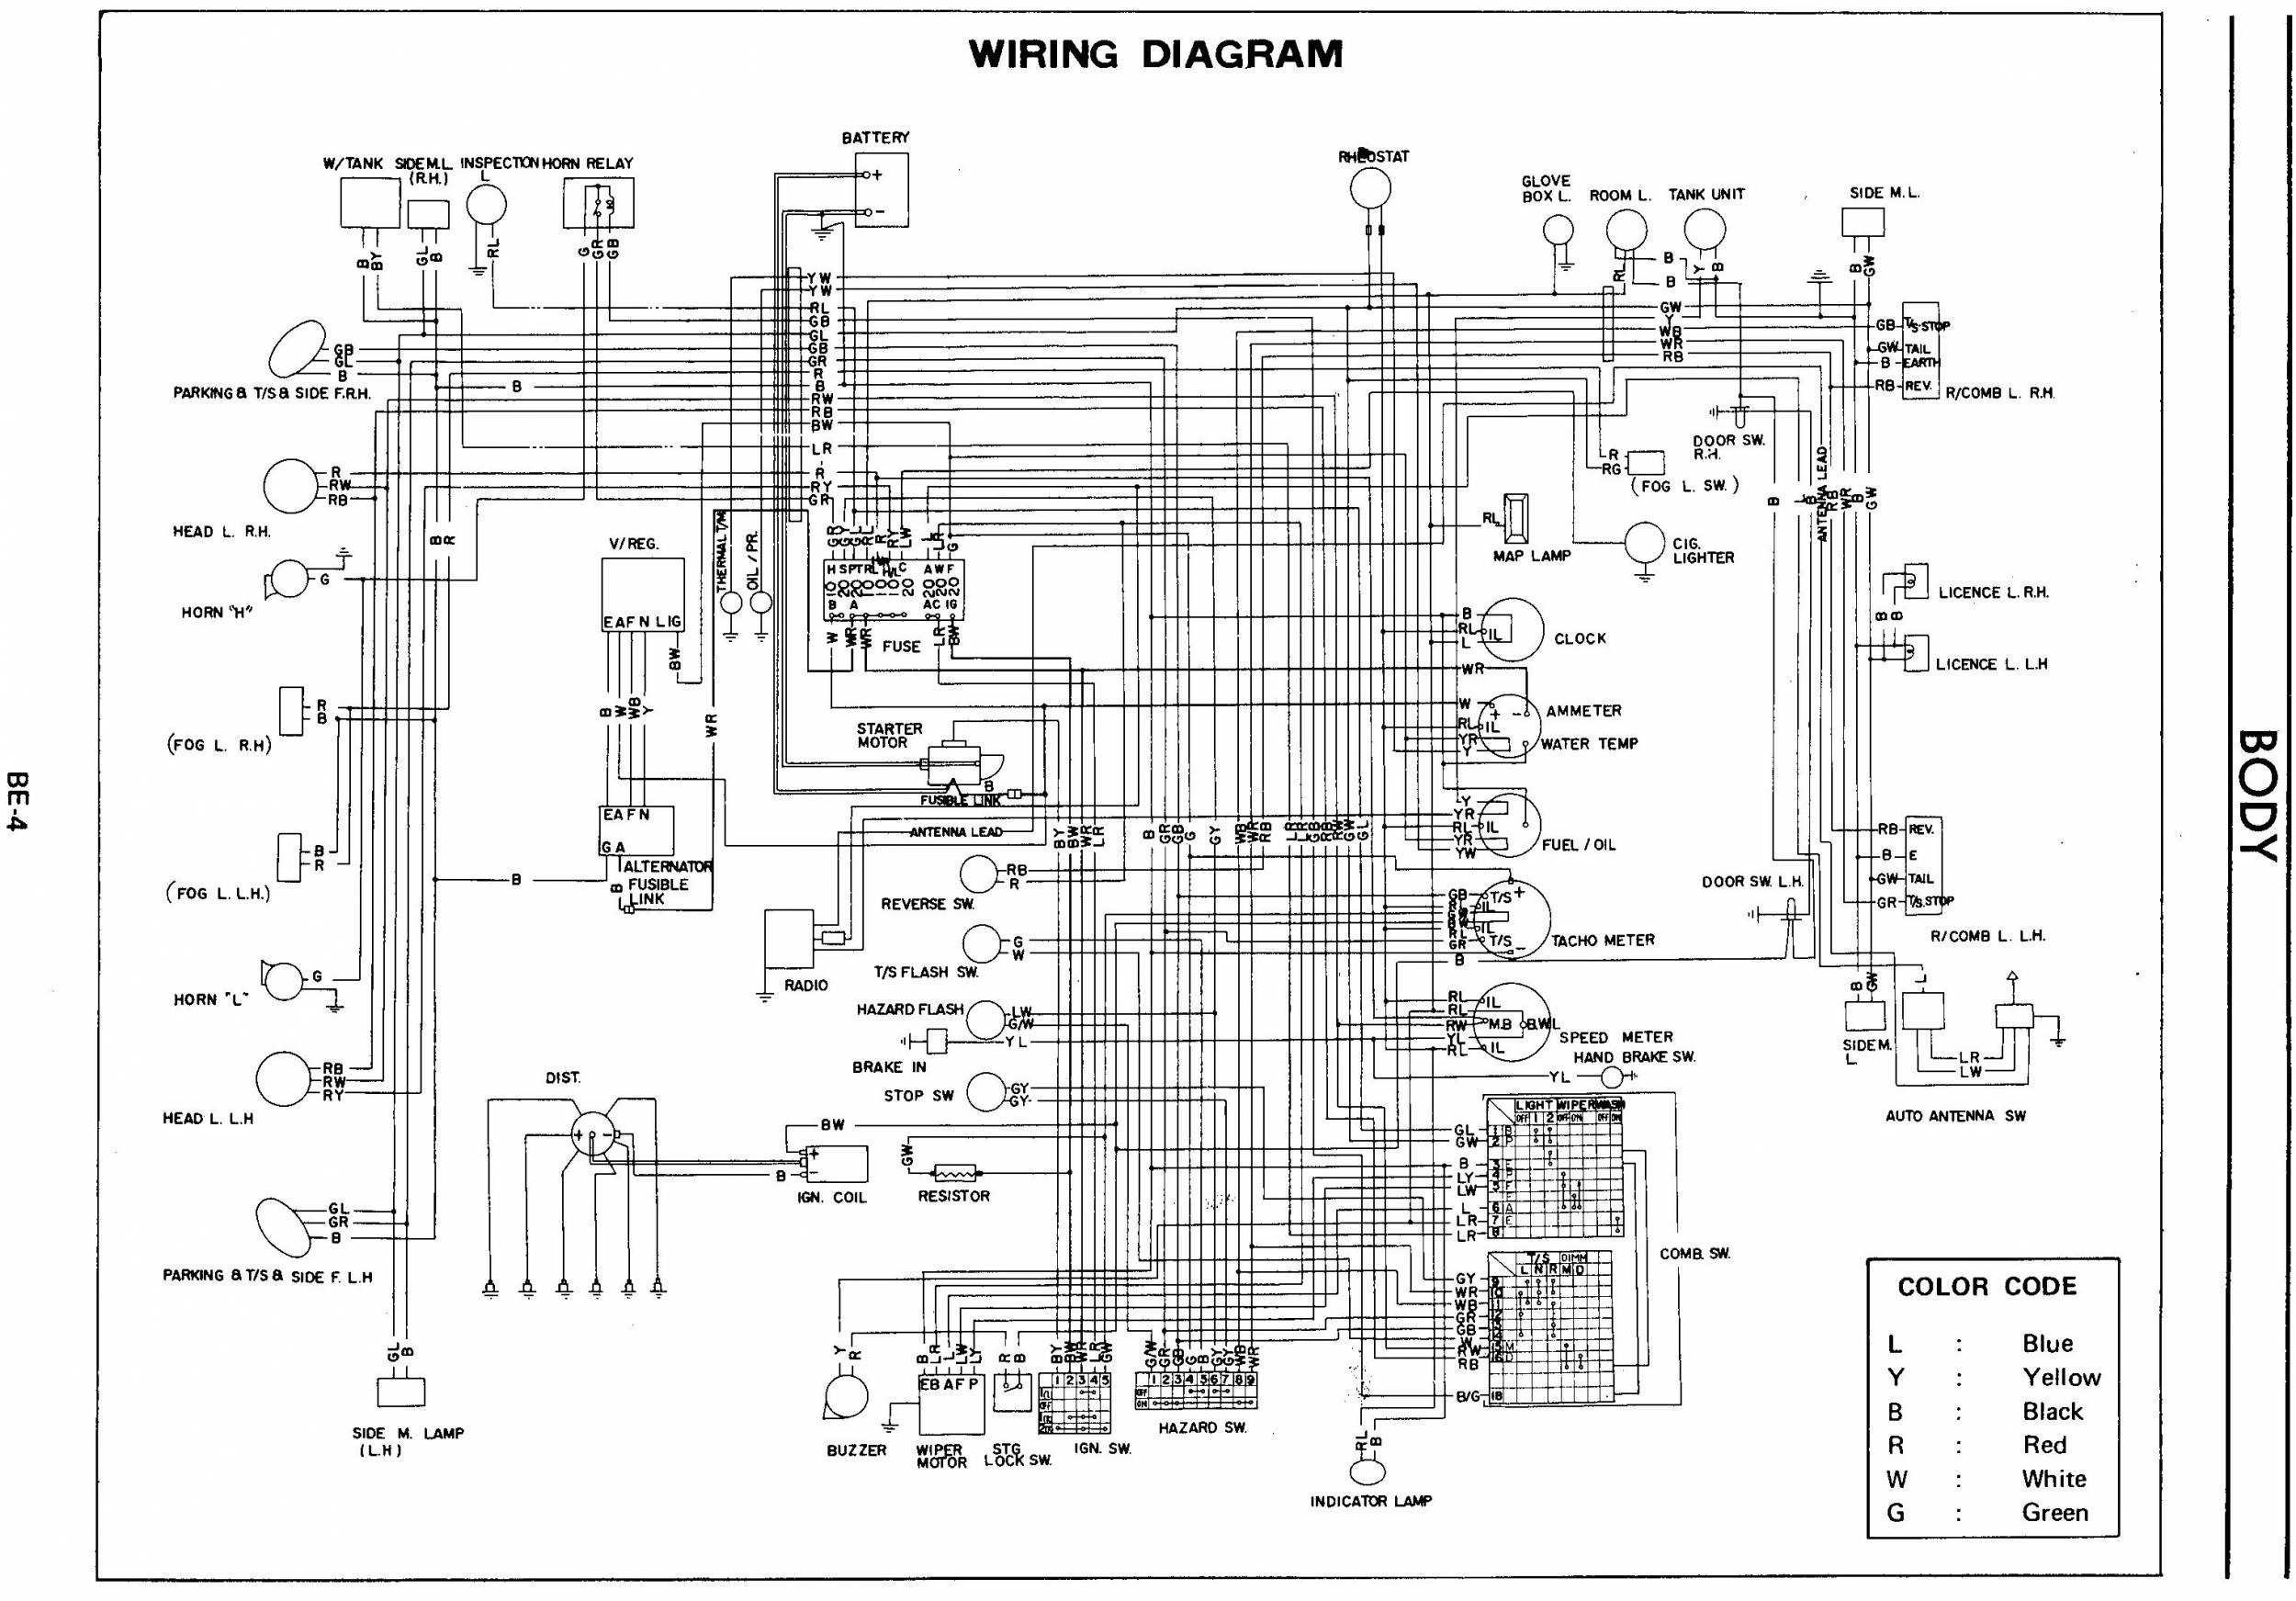 Diagram Delco Alternator Wiring Diagram Collection